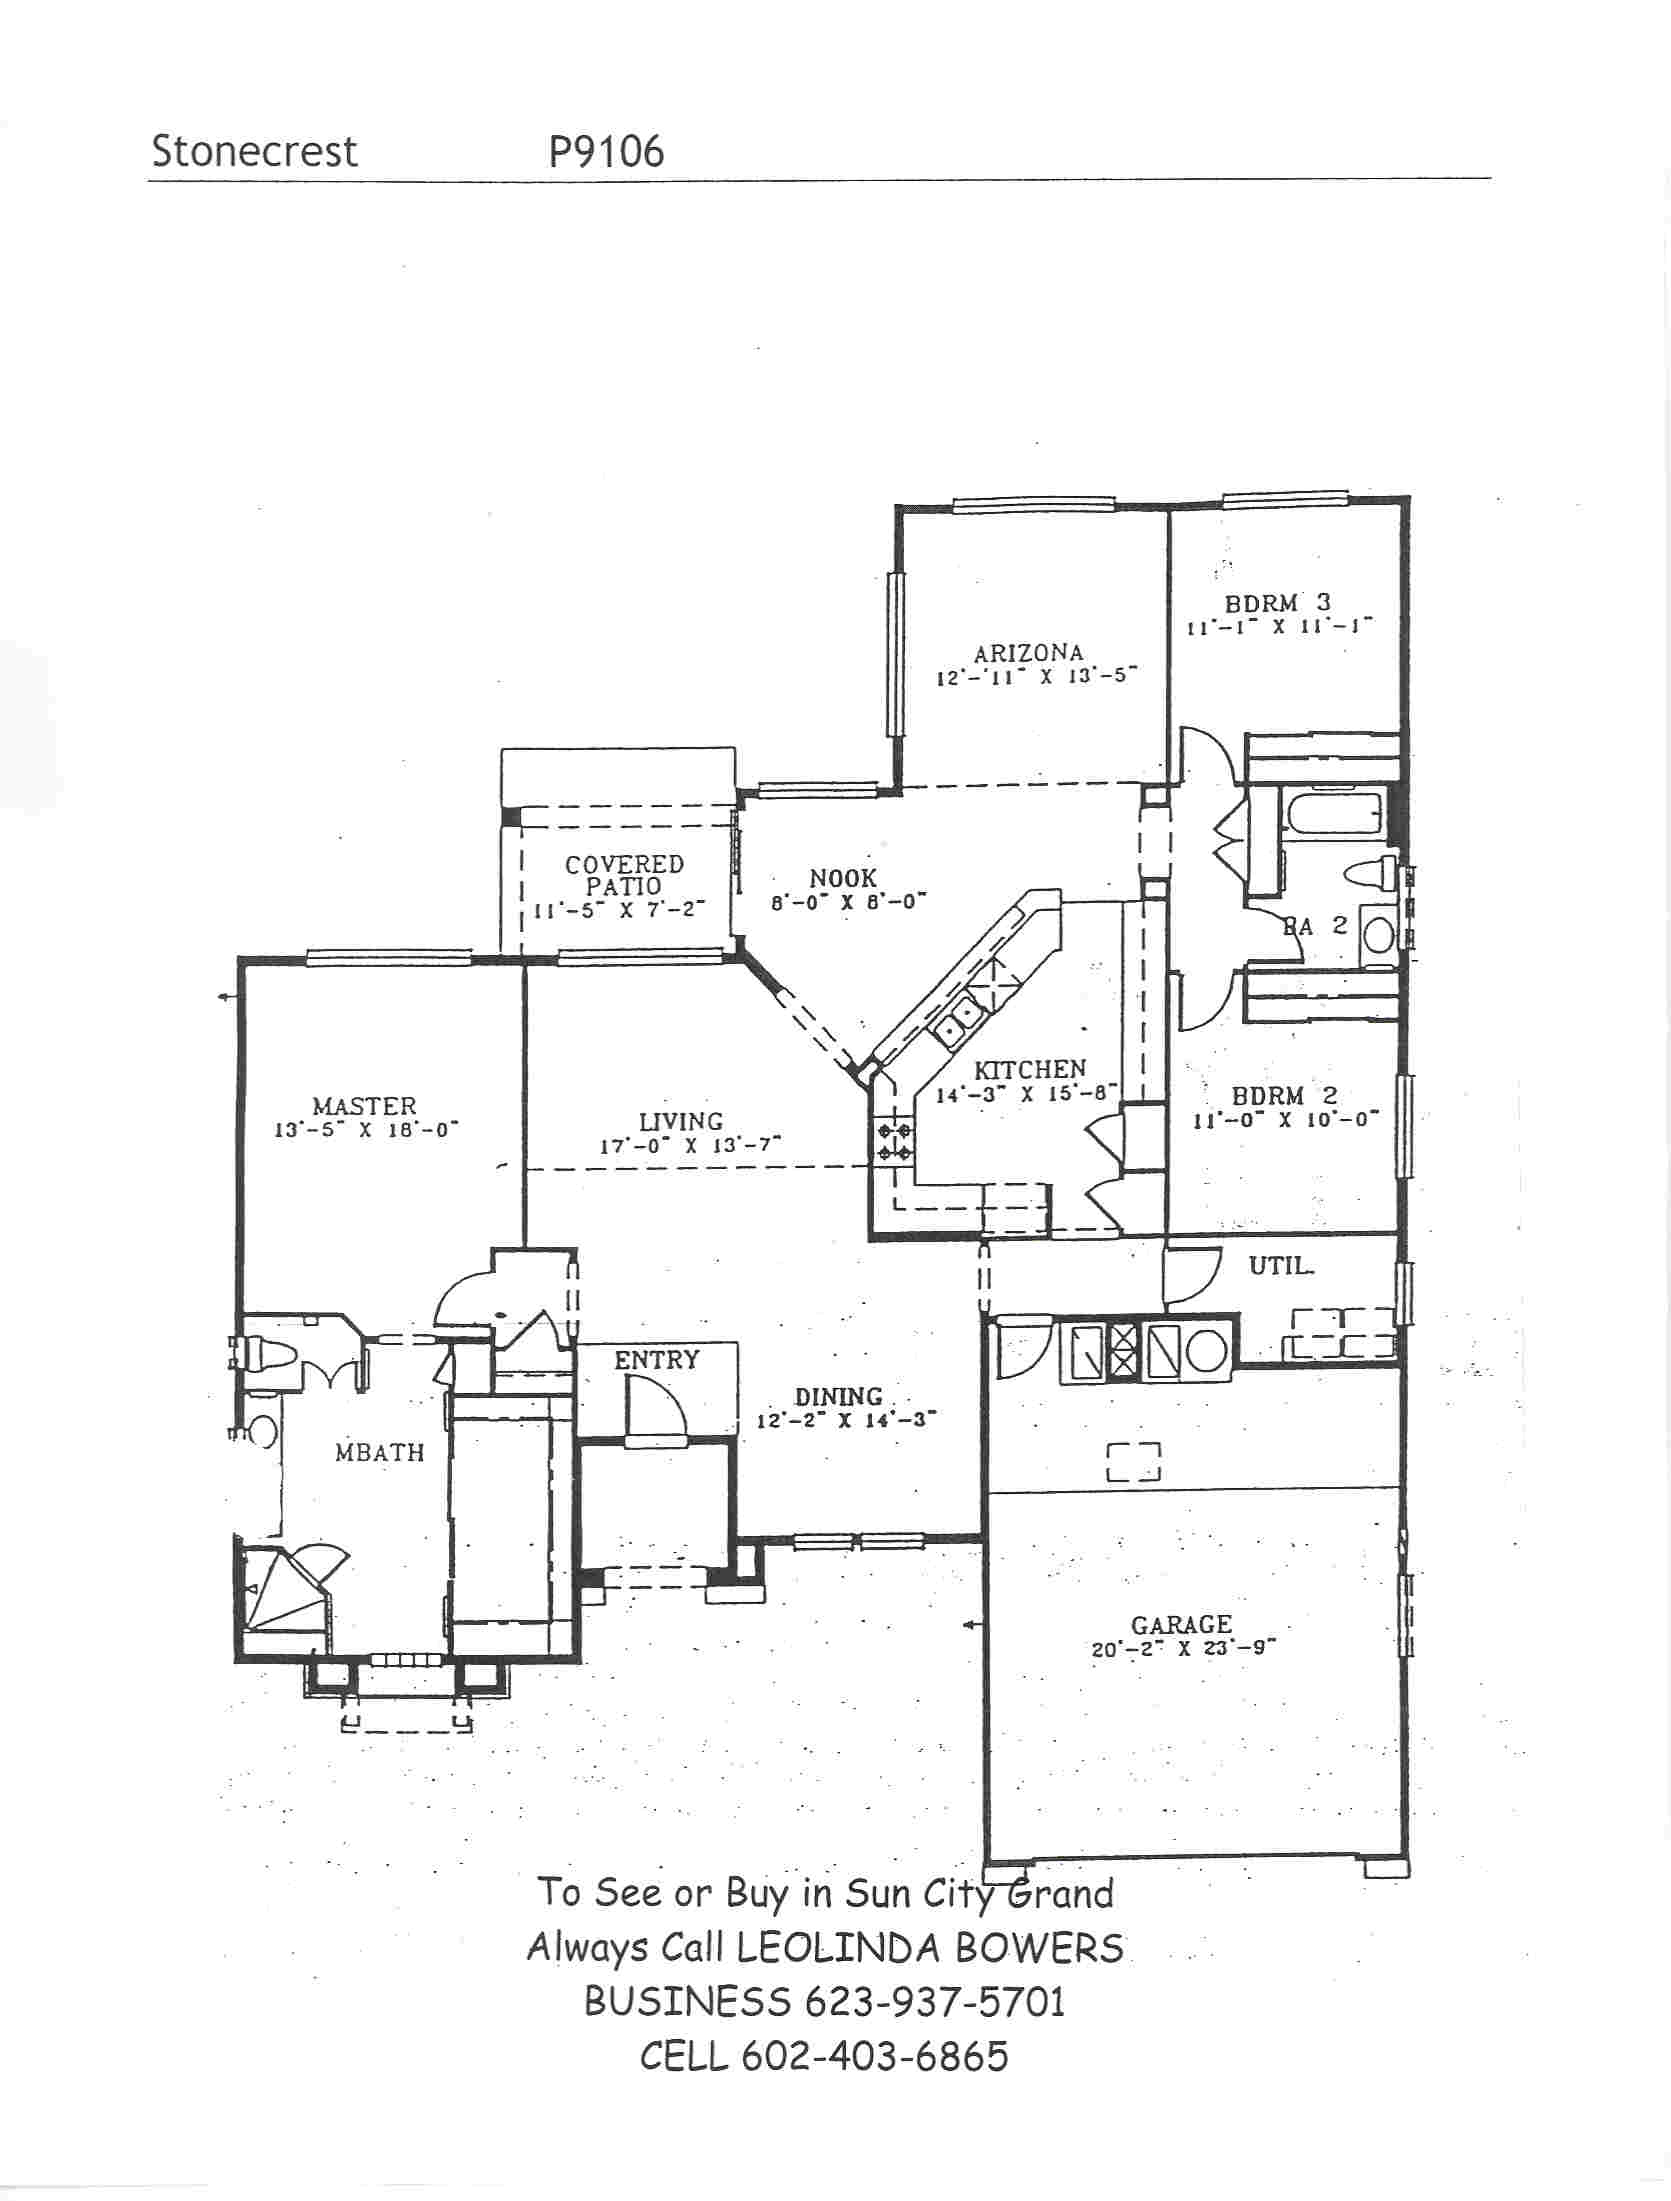 Find Sun City Grand Stonecrest floor plans – Leolinda Bowers